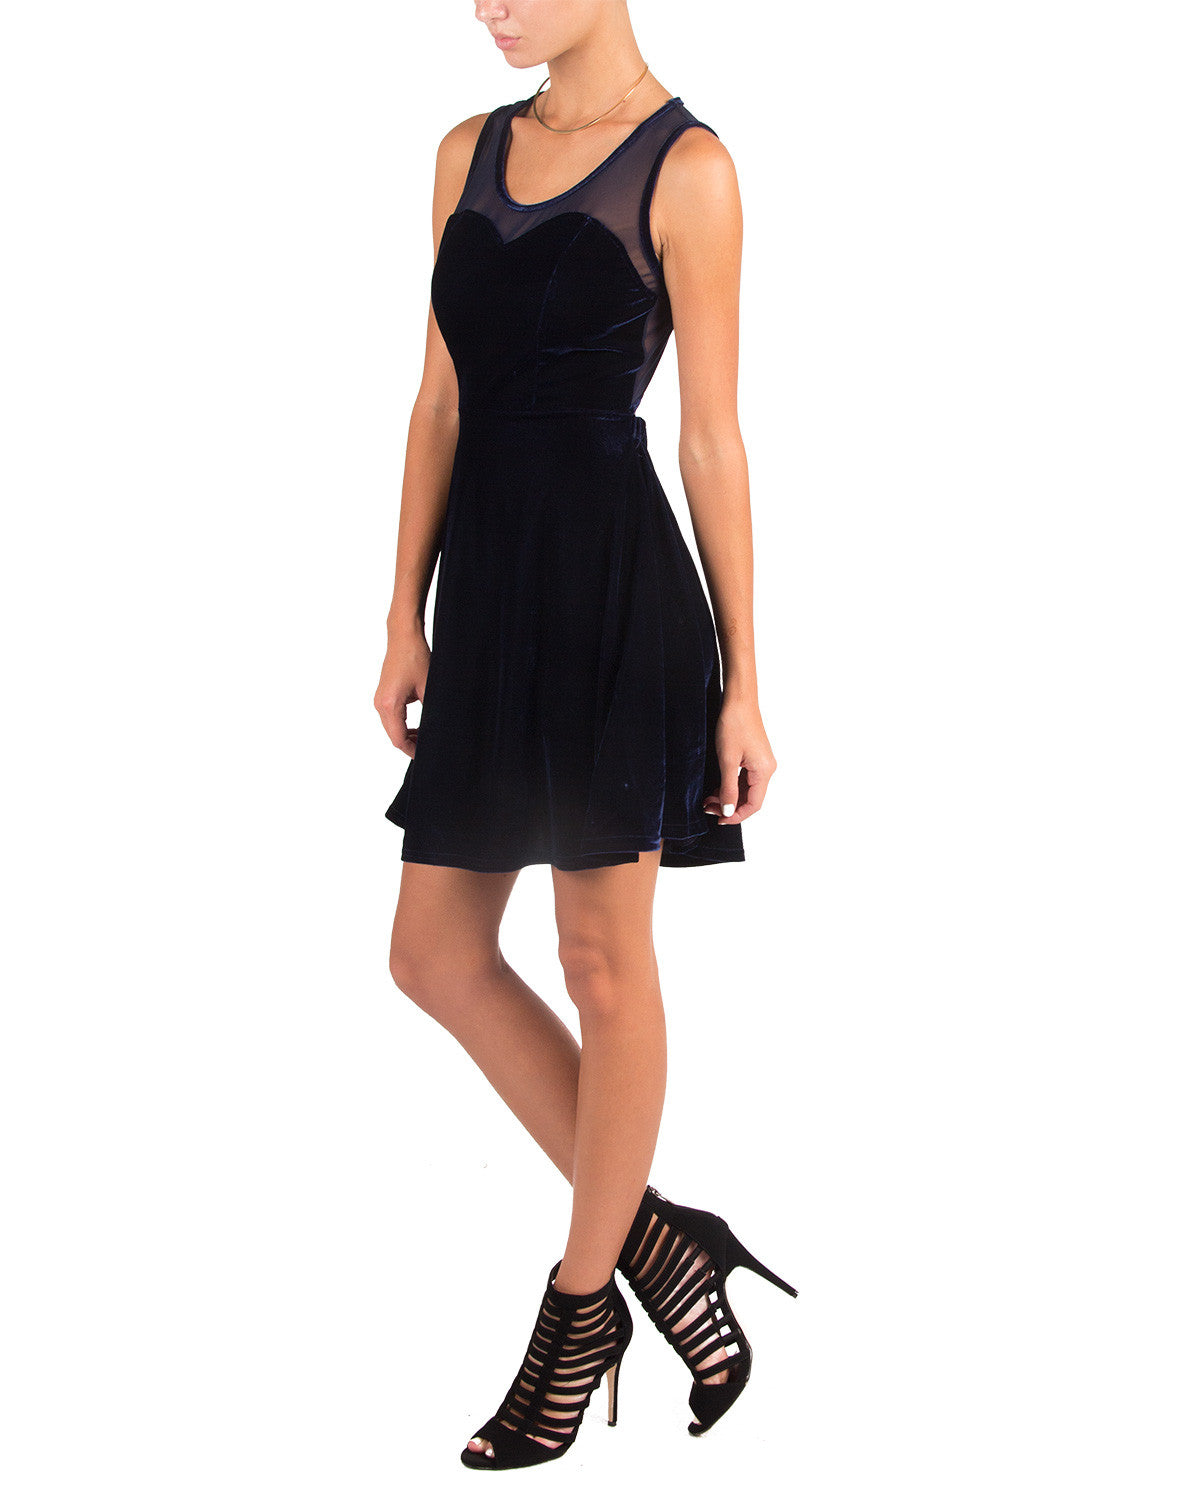 Velvet Mesh Skater Dress - Navy - Cecico 6P8384-Navy